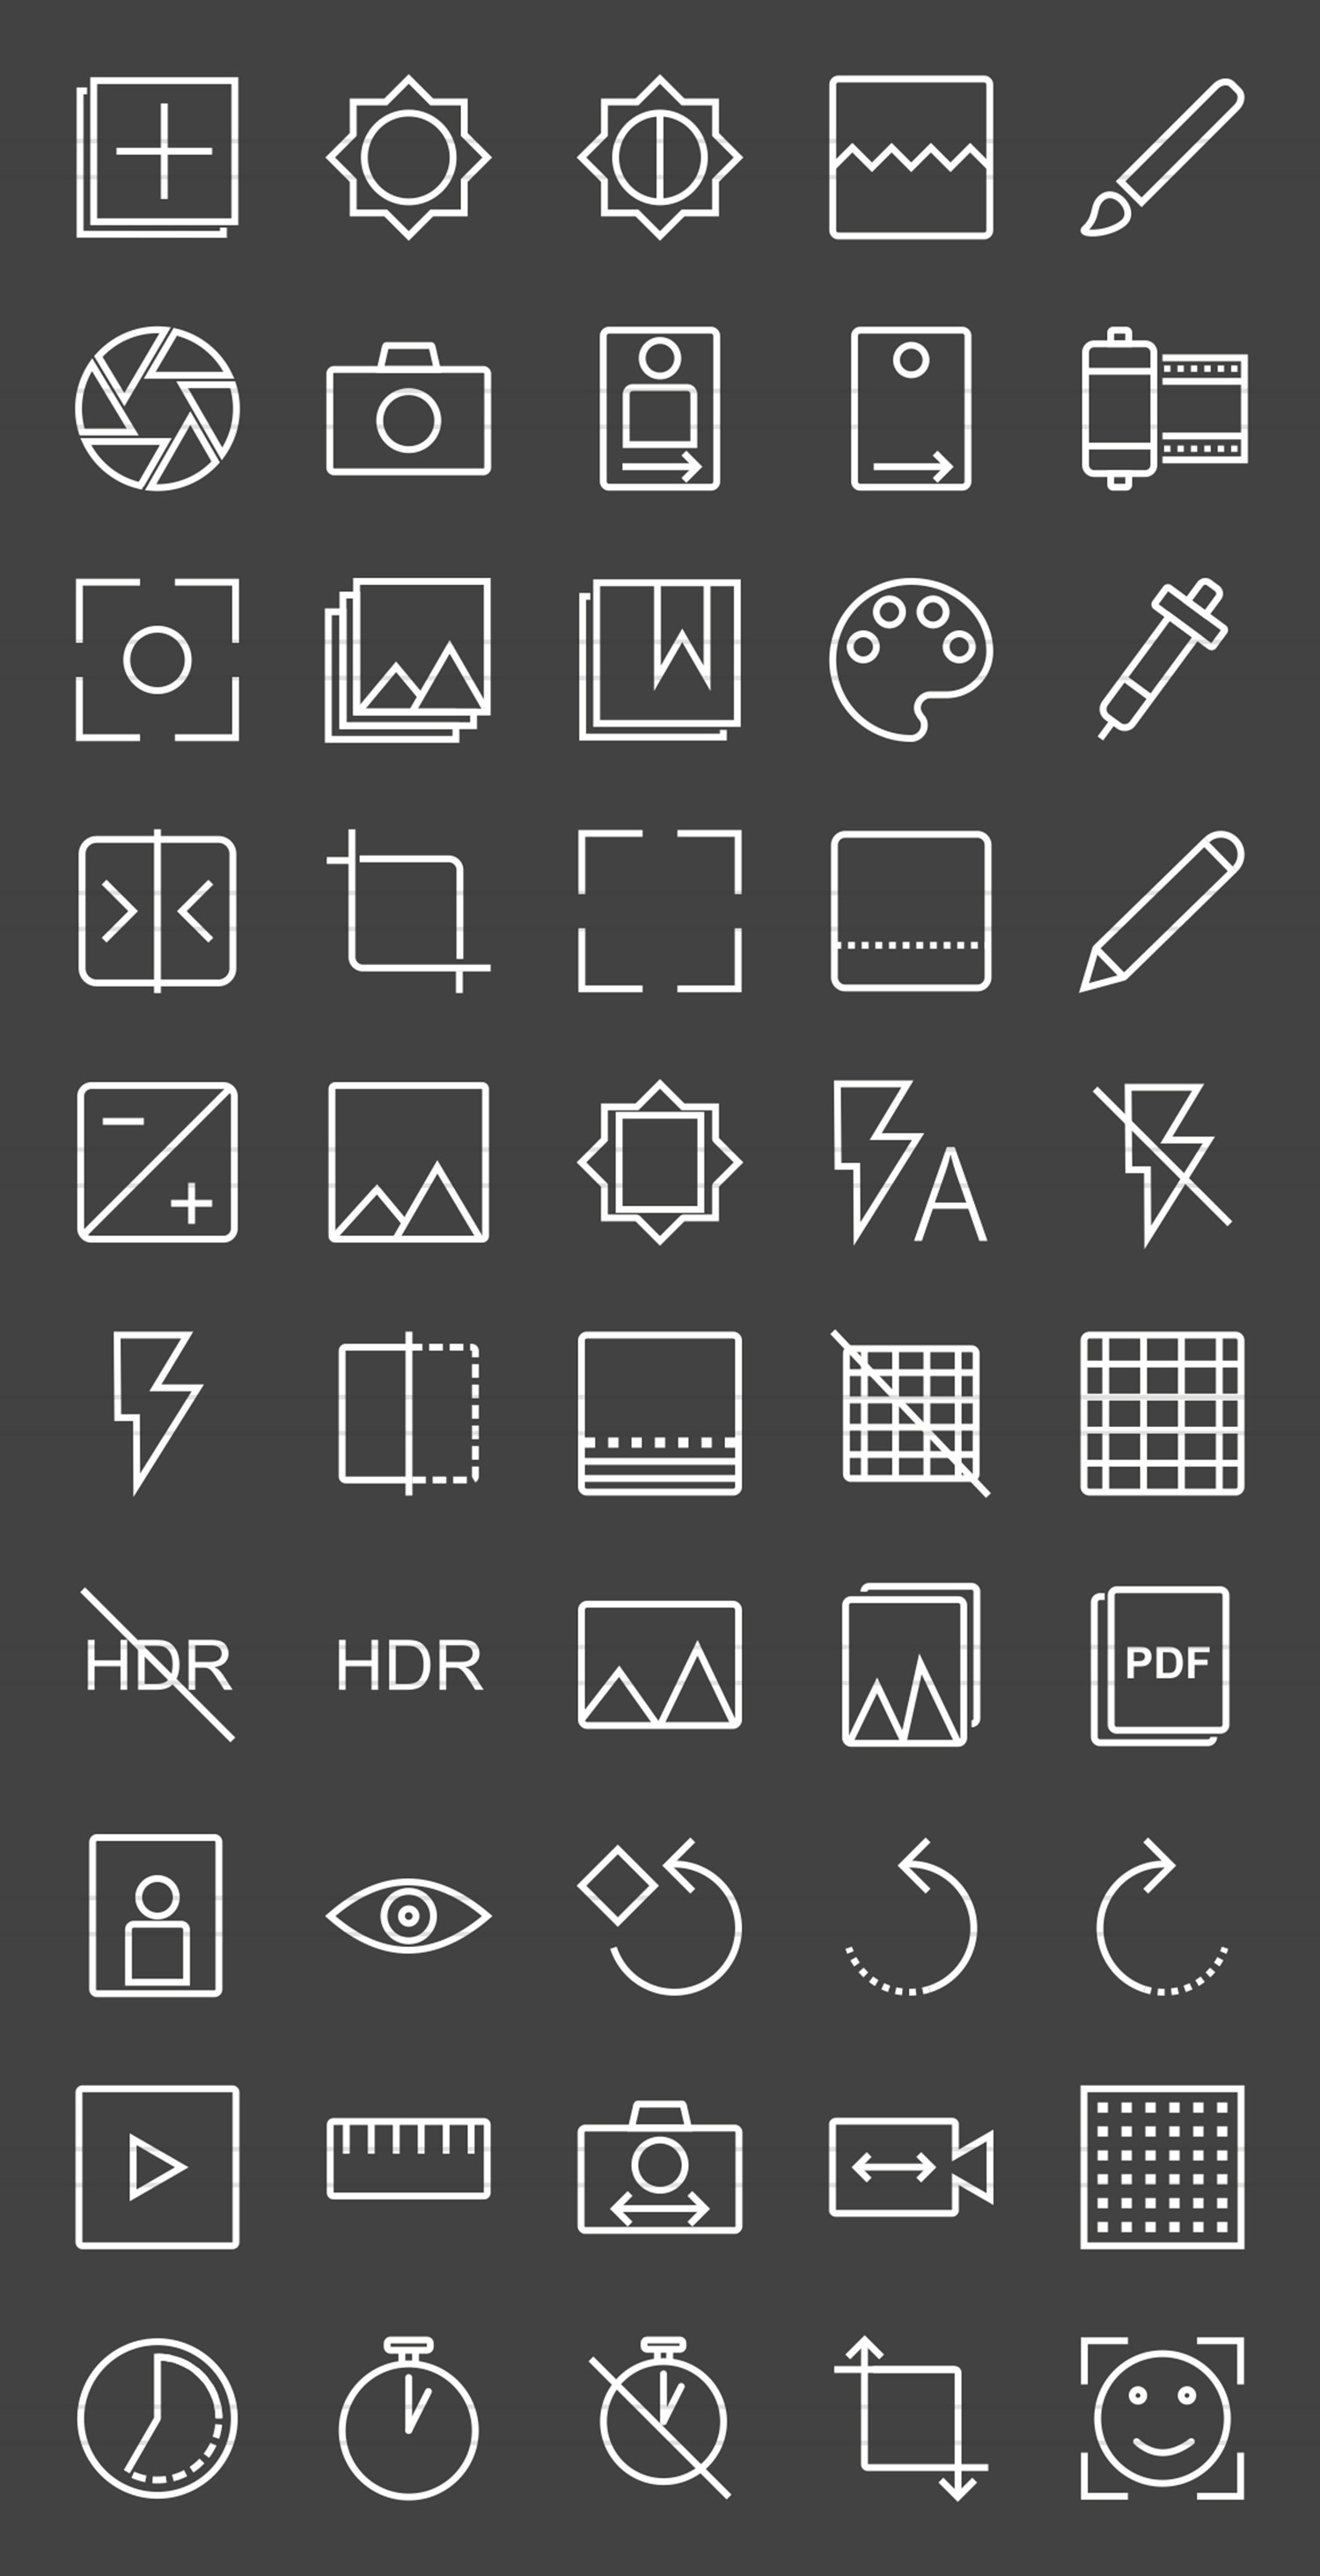 50 Picture Editing Line Inverted Icons example image 2